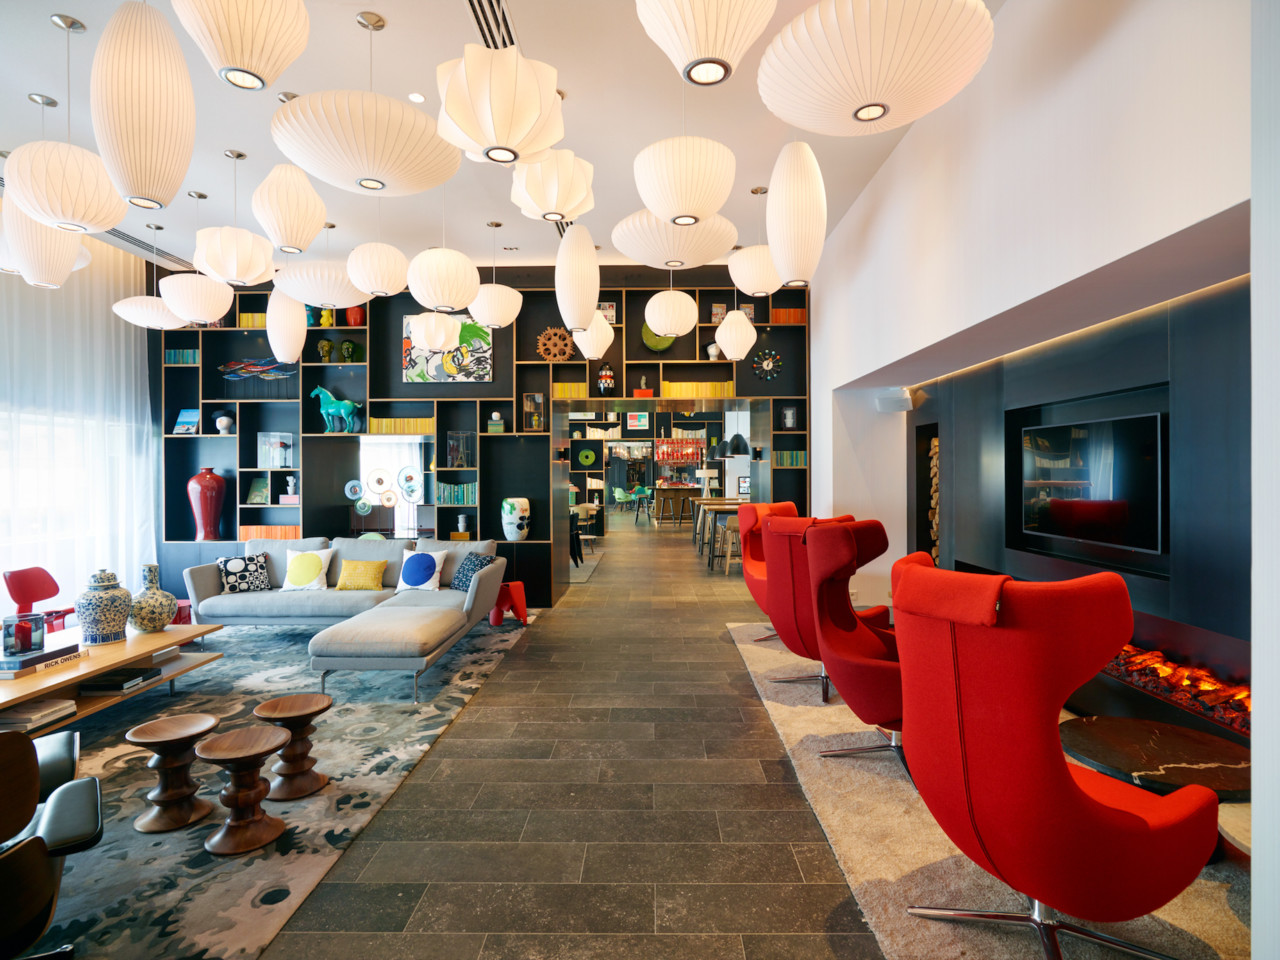 citizenM's Gare de Lyon Hotel Is a Hub for Travel, Art and Technology